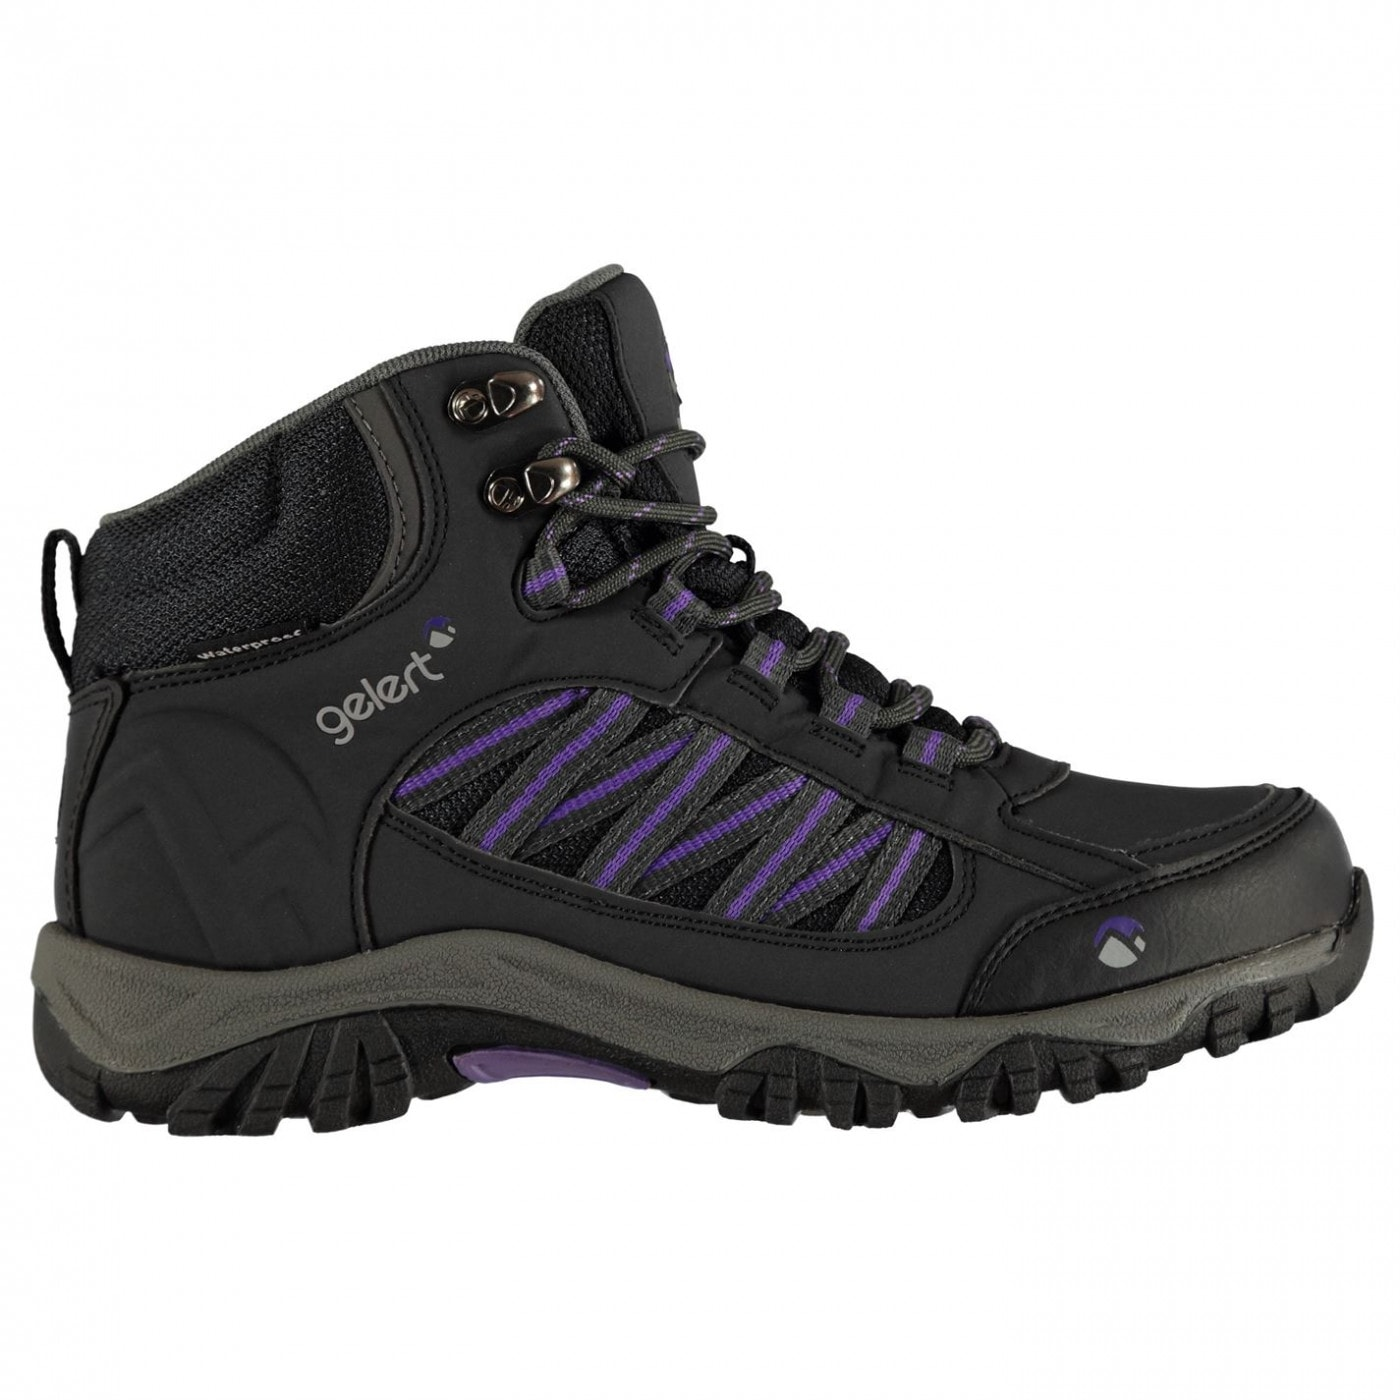 Gelert Horizon Mid Waterproof Ladies Walking Boots